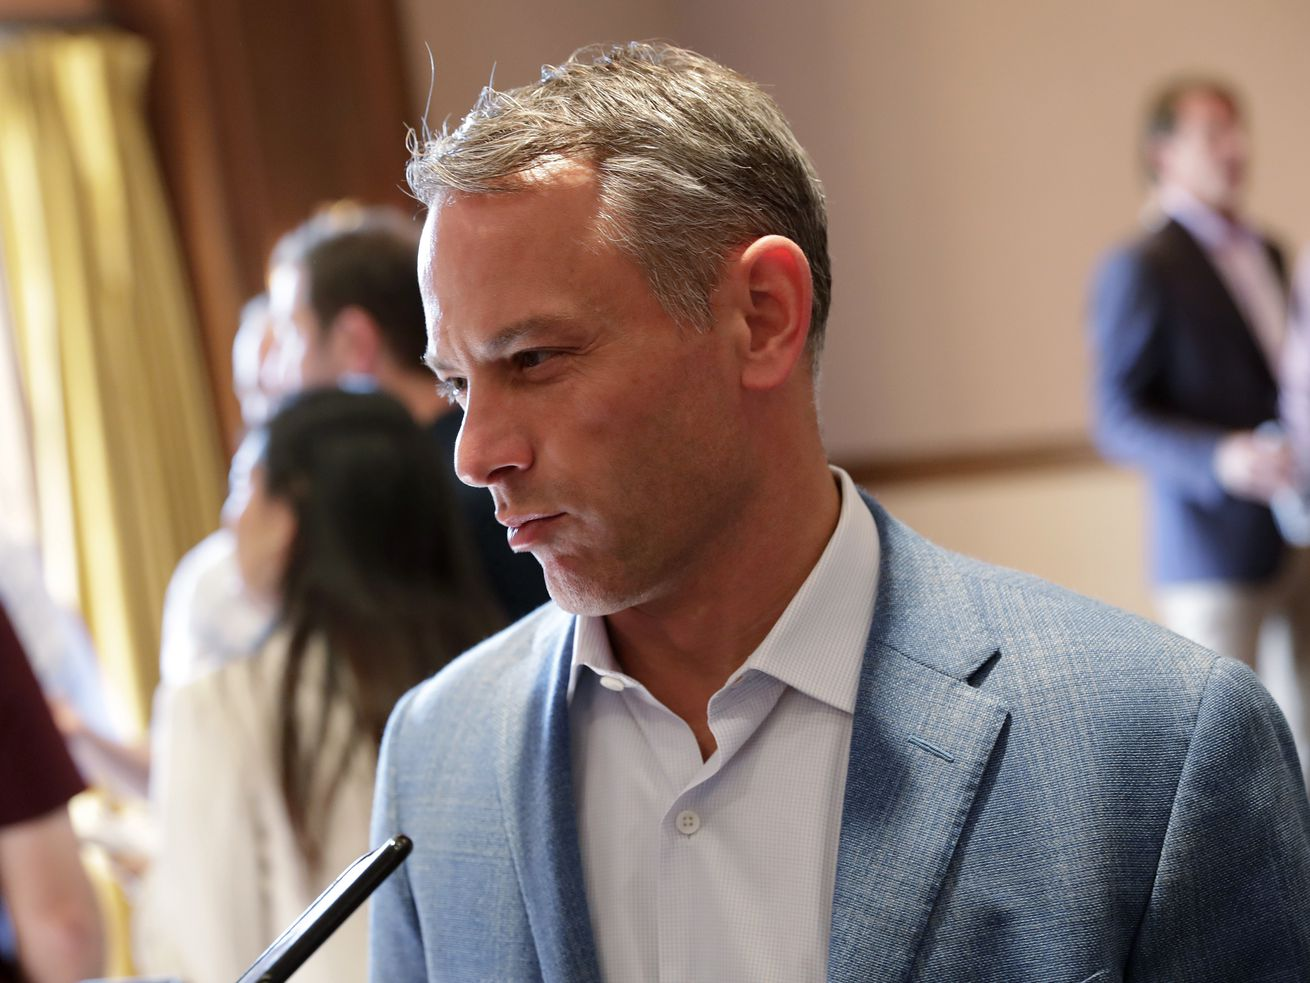 """Cubs president of baseball operations Jed Hoyer said his hope was """"waning"""" that the Cubs would reach the 85% vaccination threshold that would ease coronavirus restrictions by MLB.r"""